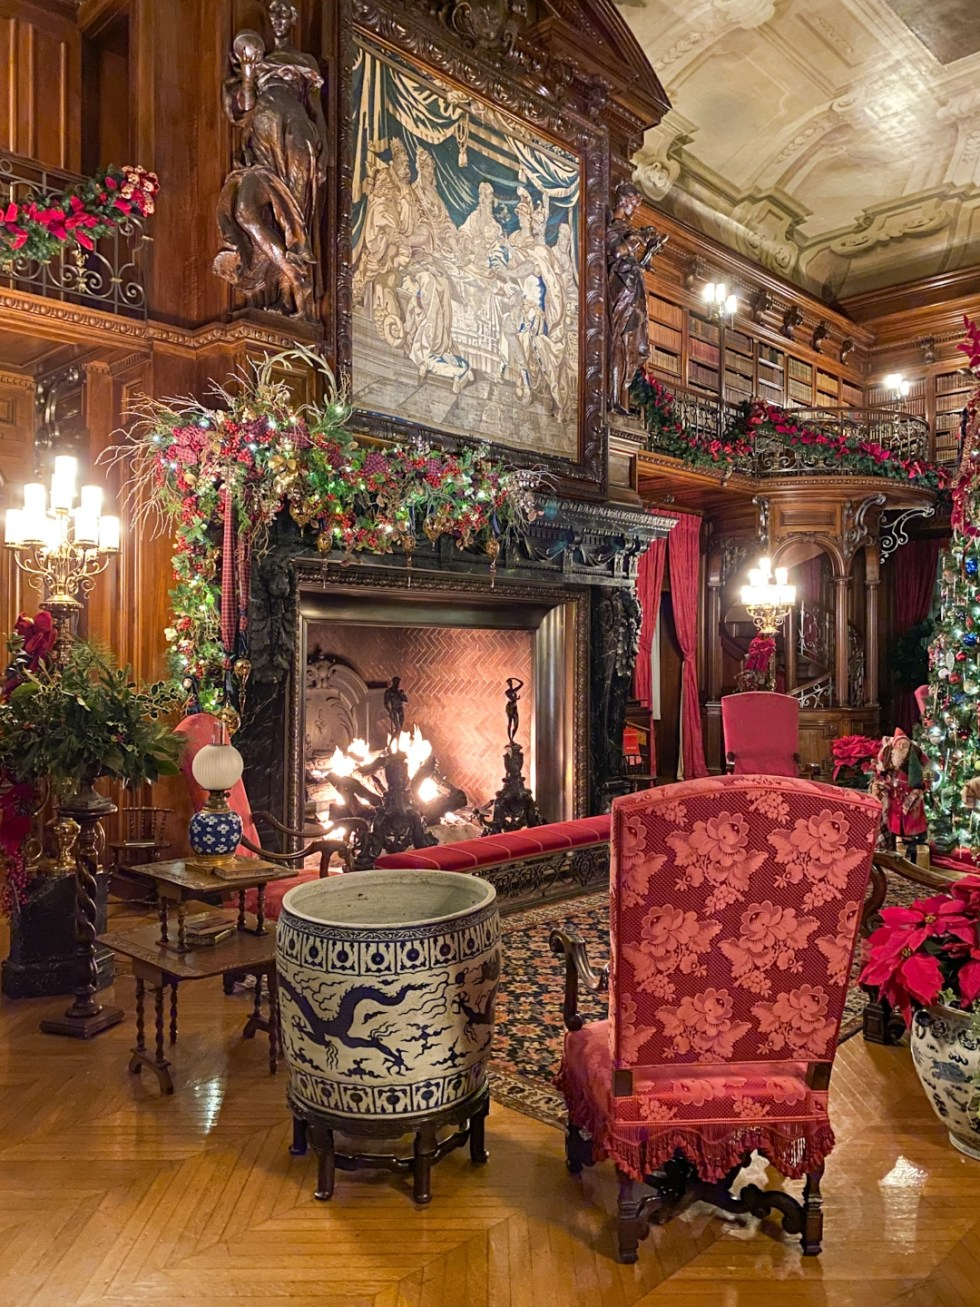 Christmas in Asheville: a Weekend Getaway During the Holidays - I'm Fixin' To - @imfixintoblog |Christmas in Asheville NC by popular NC lifestyle blog, I'm Fixin' To: image of a ornate fireplace at the Biltmore House.